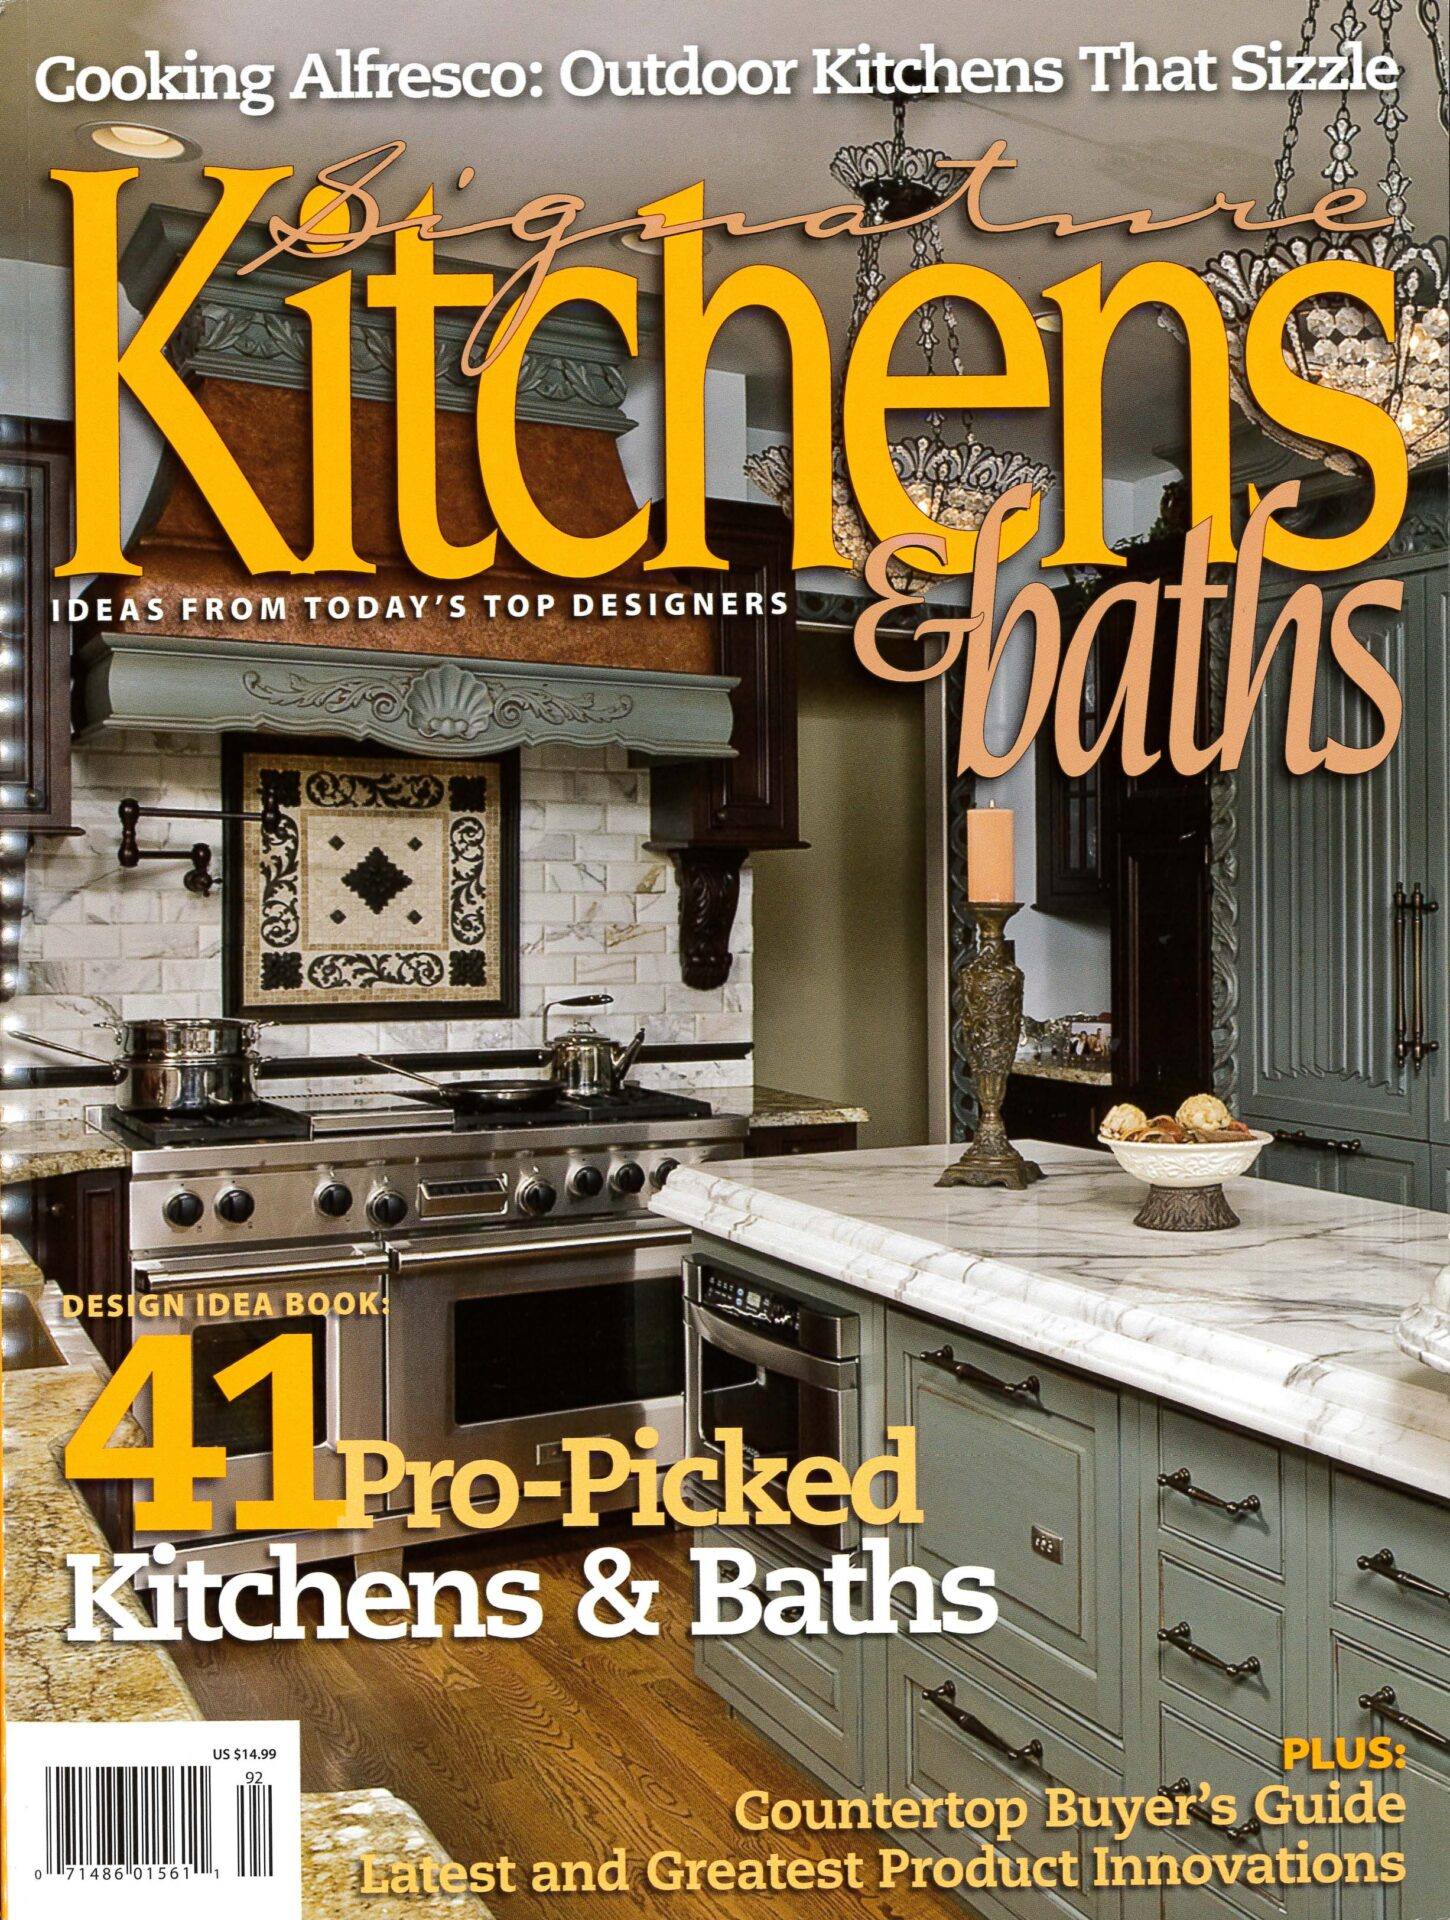 Signature Kitchen & Bath Ideas,Summer 2009